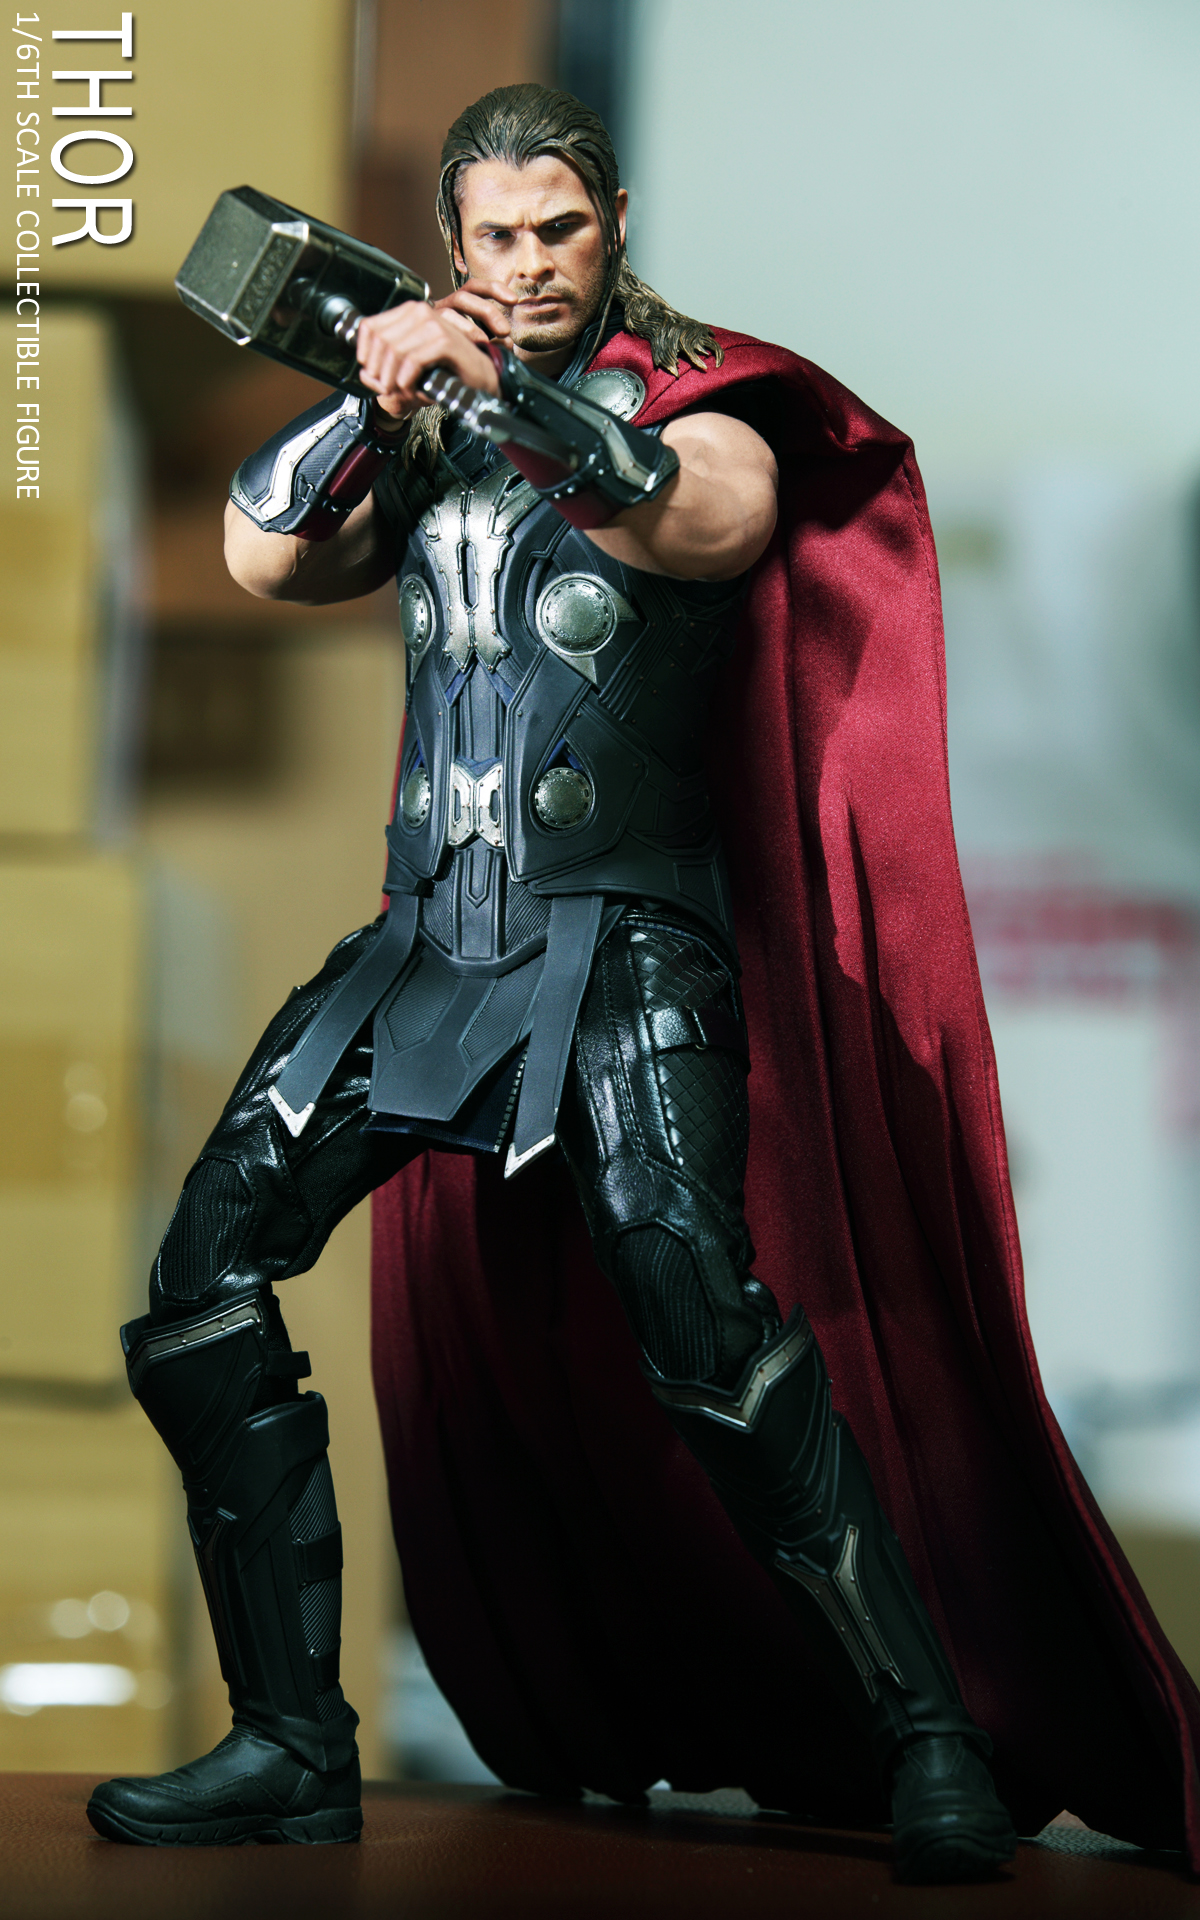 hot-toys-avengers-age-of-ultron-thor-picture-01